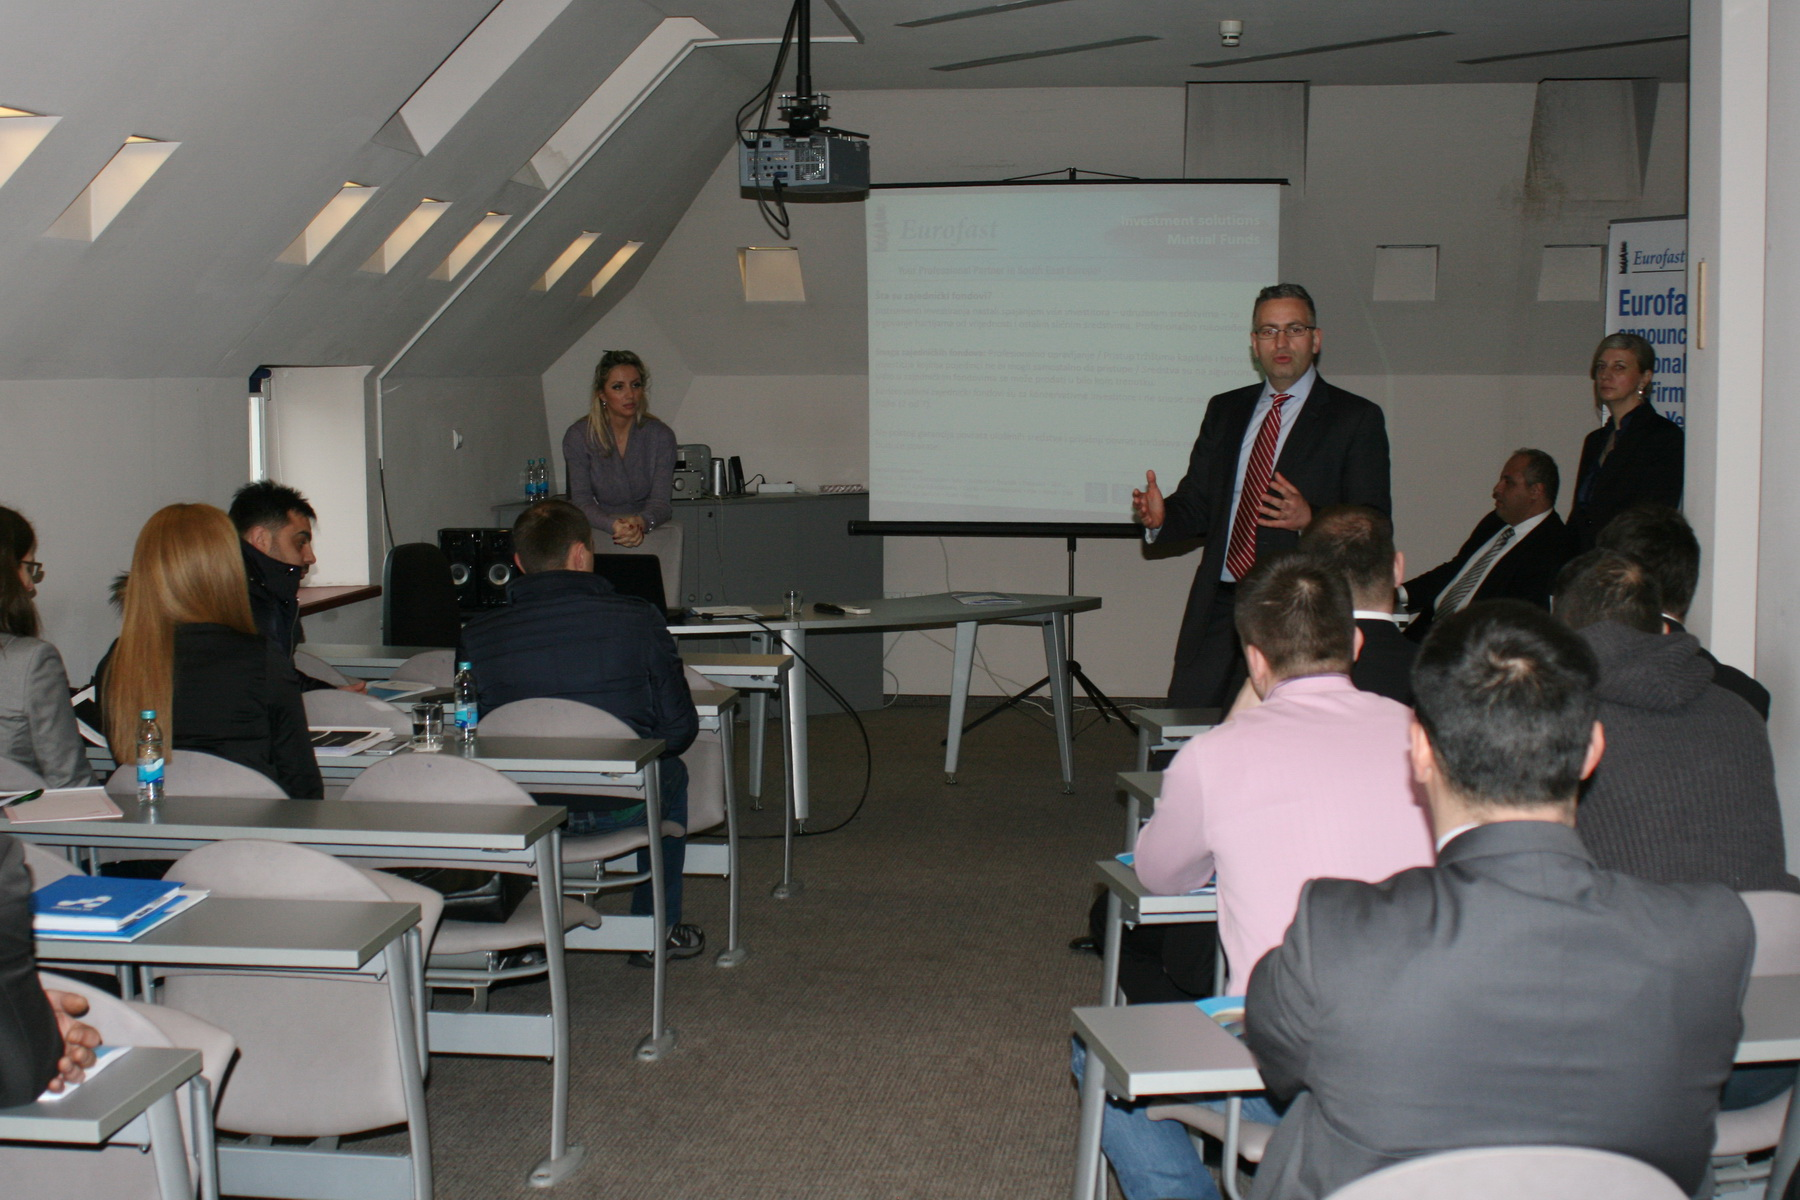 Eurofast continues to work with business people in BiH